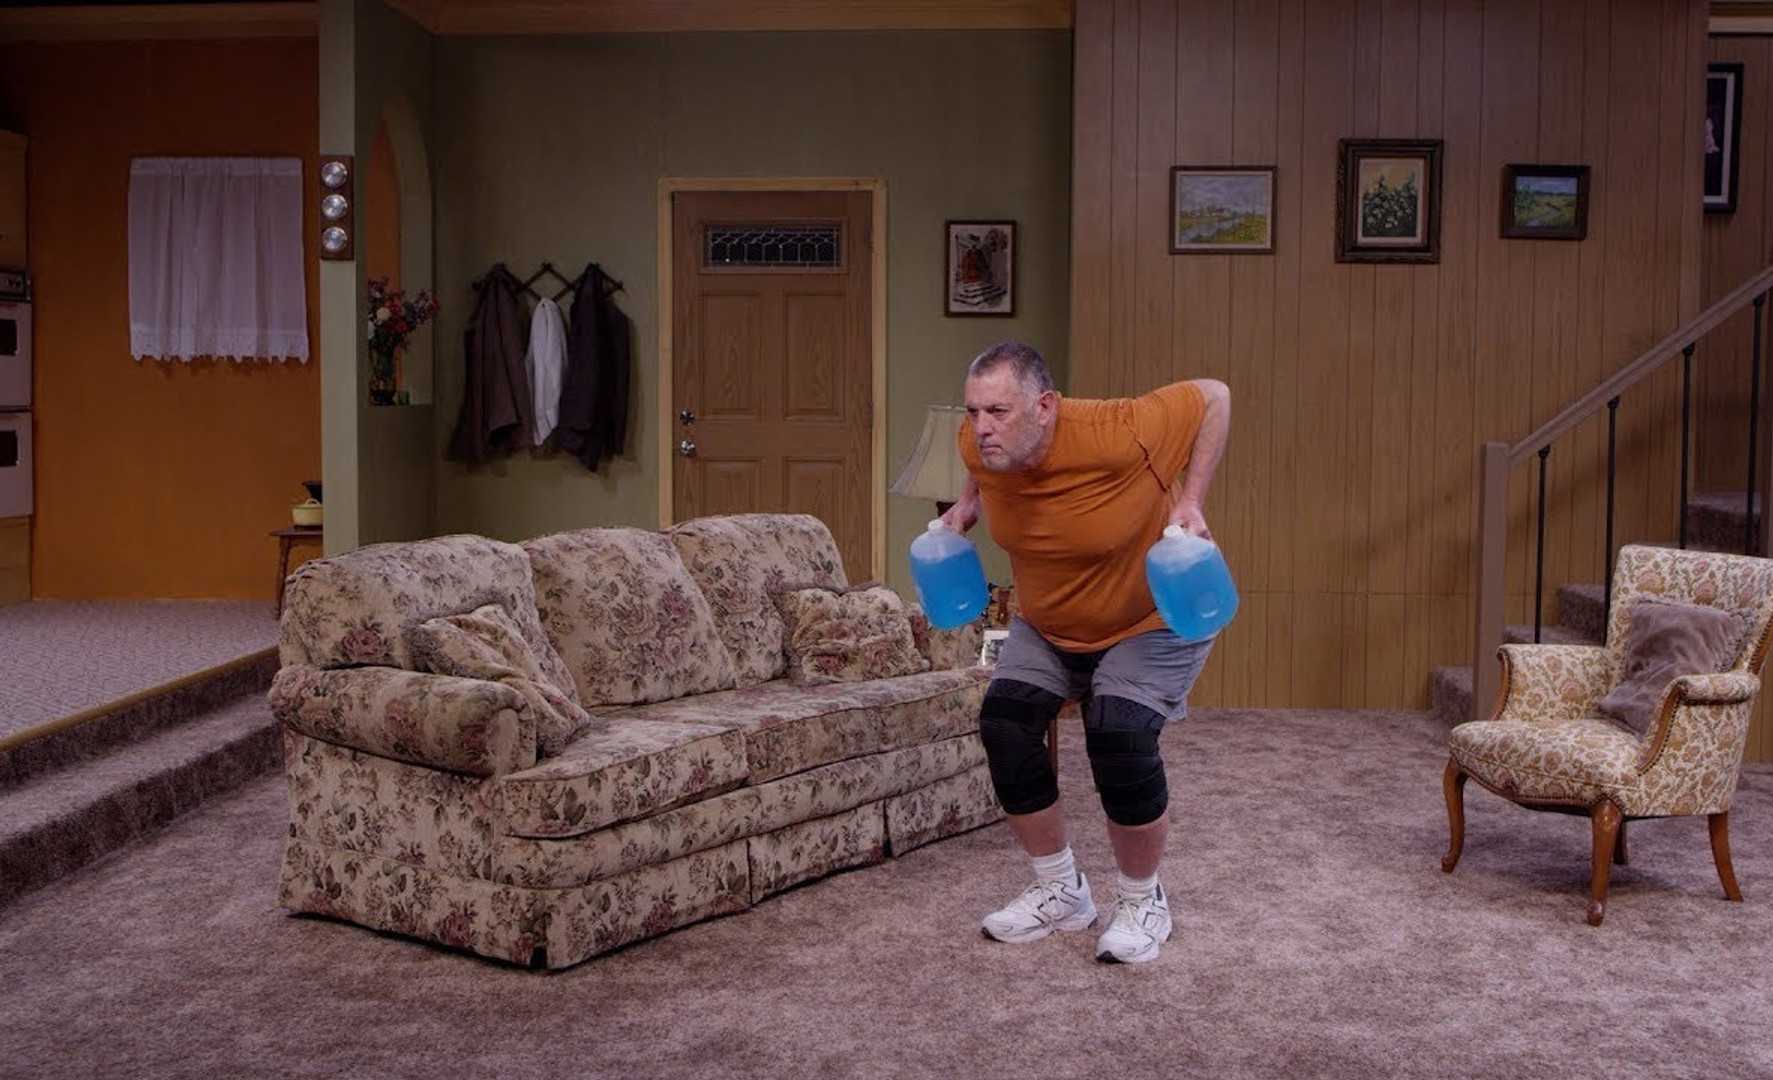 crossfit makes a demo...in al bundy's living room